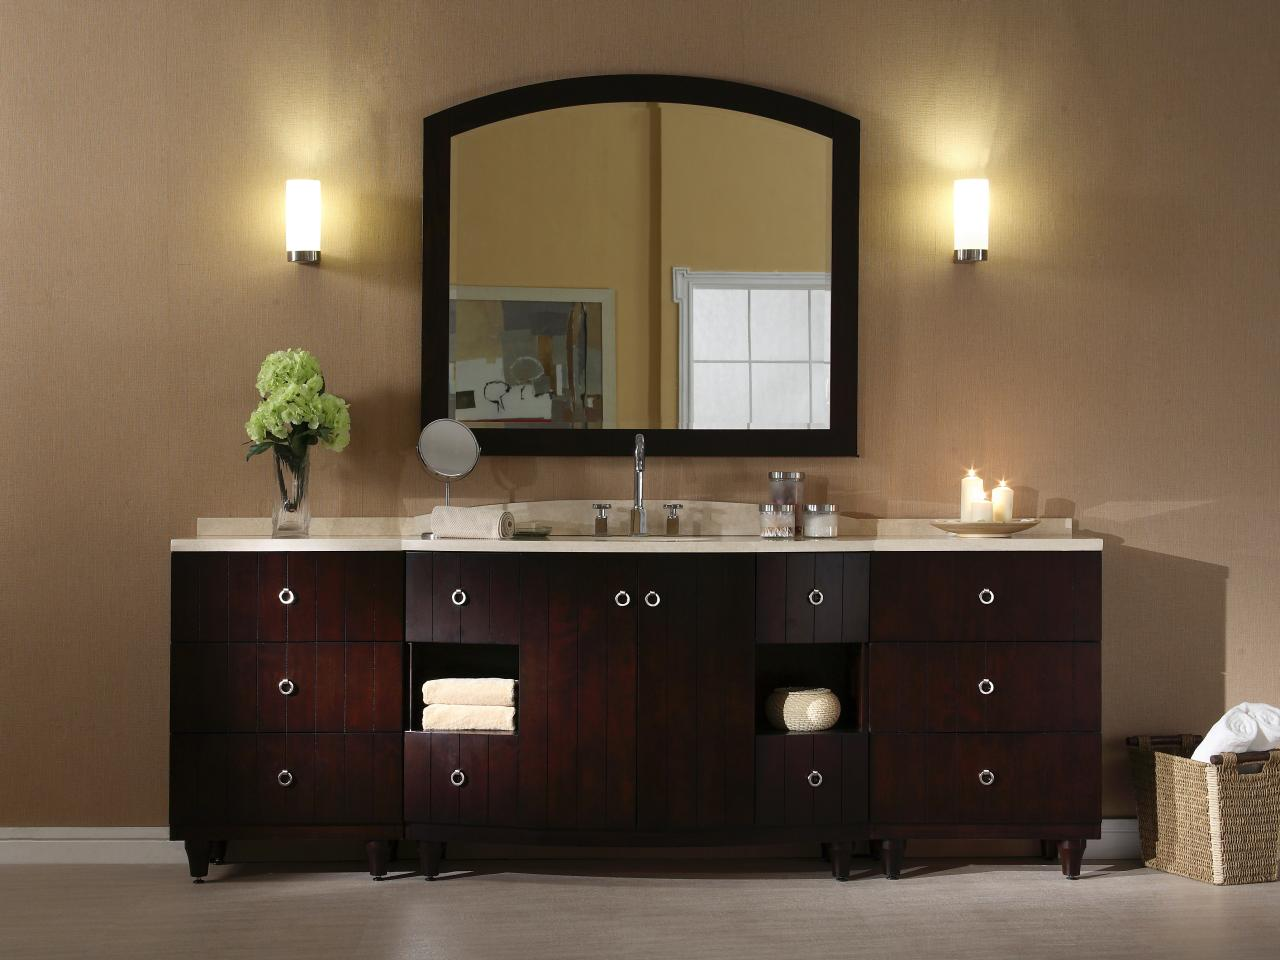 Great Bathroom Vanity Lighting designing bathroom lighting | hgtv